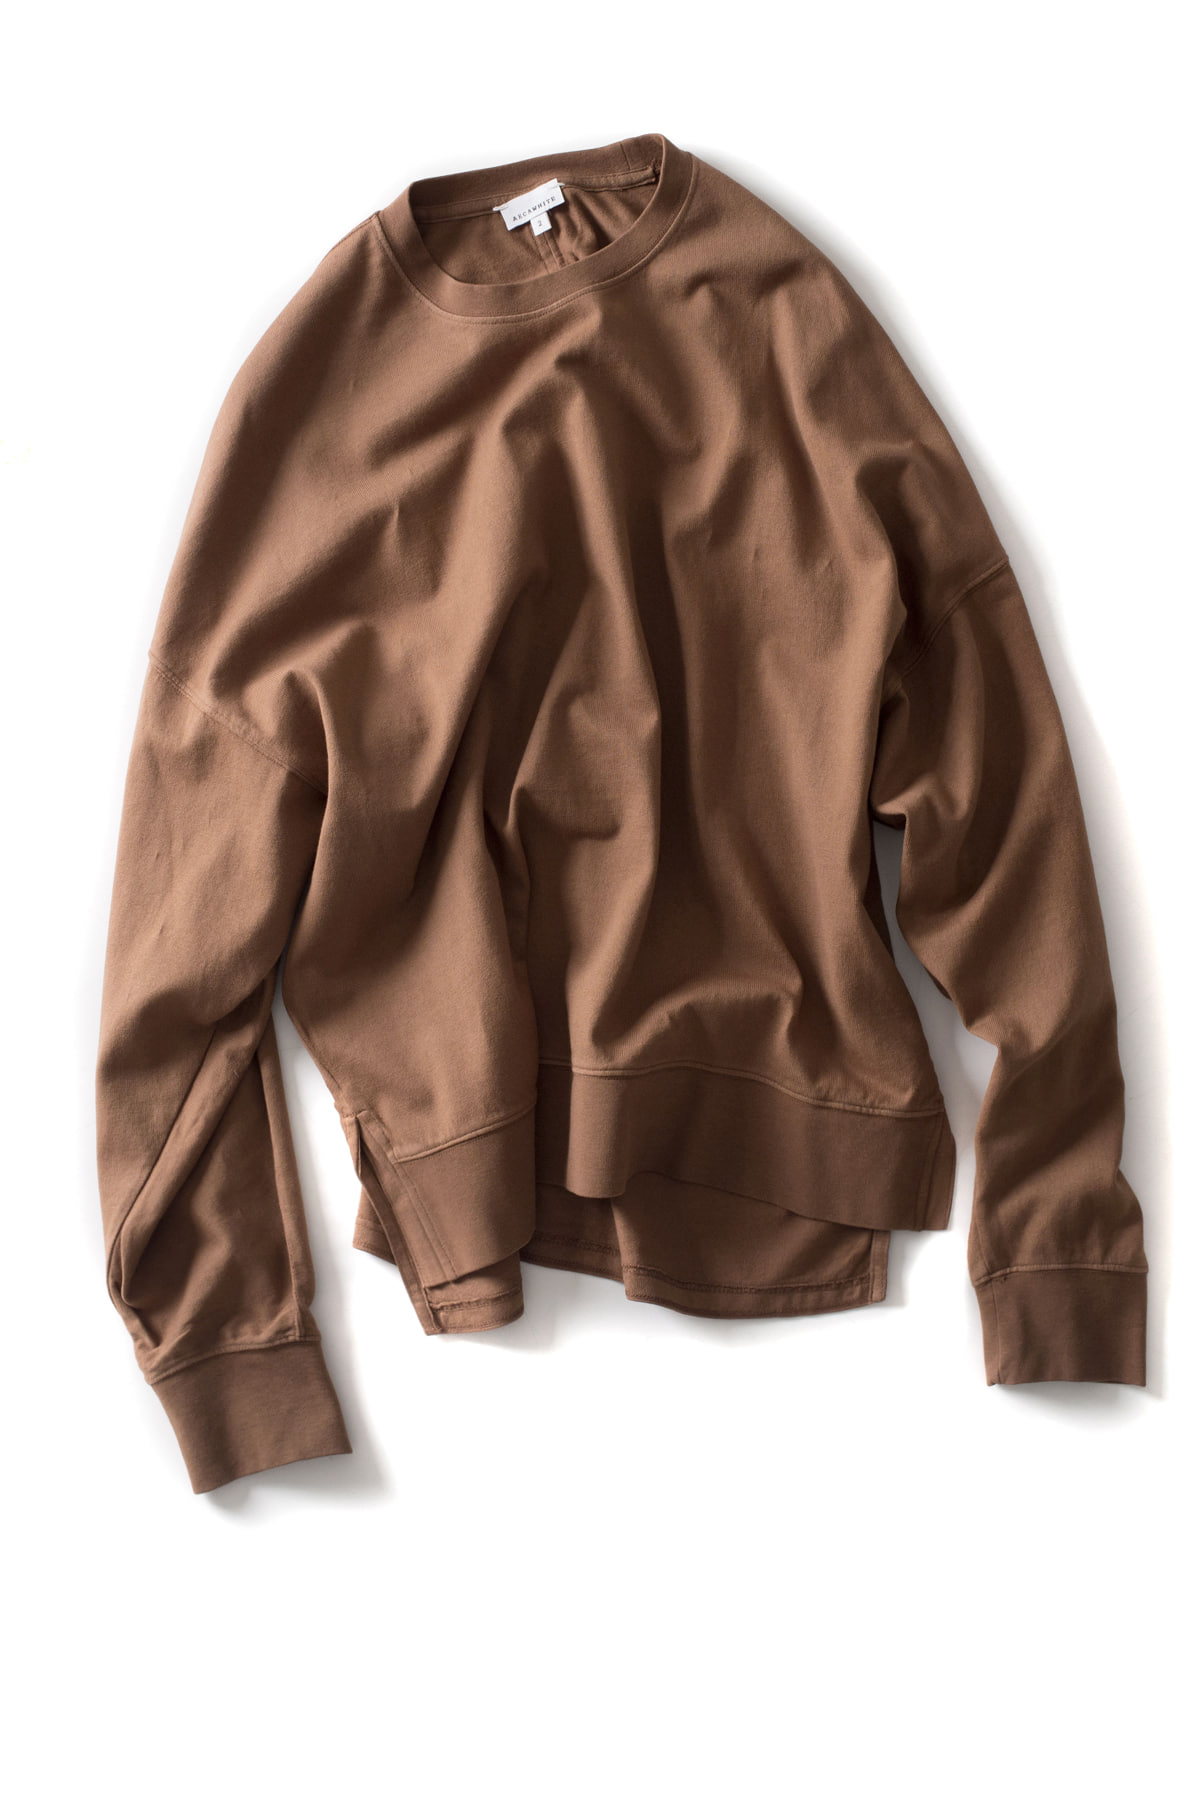 AECA WHITE x IAMSHOP Exclusive : Oversize Batwing Sweat (Brown)